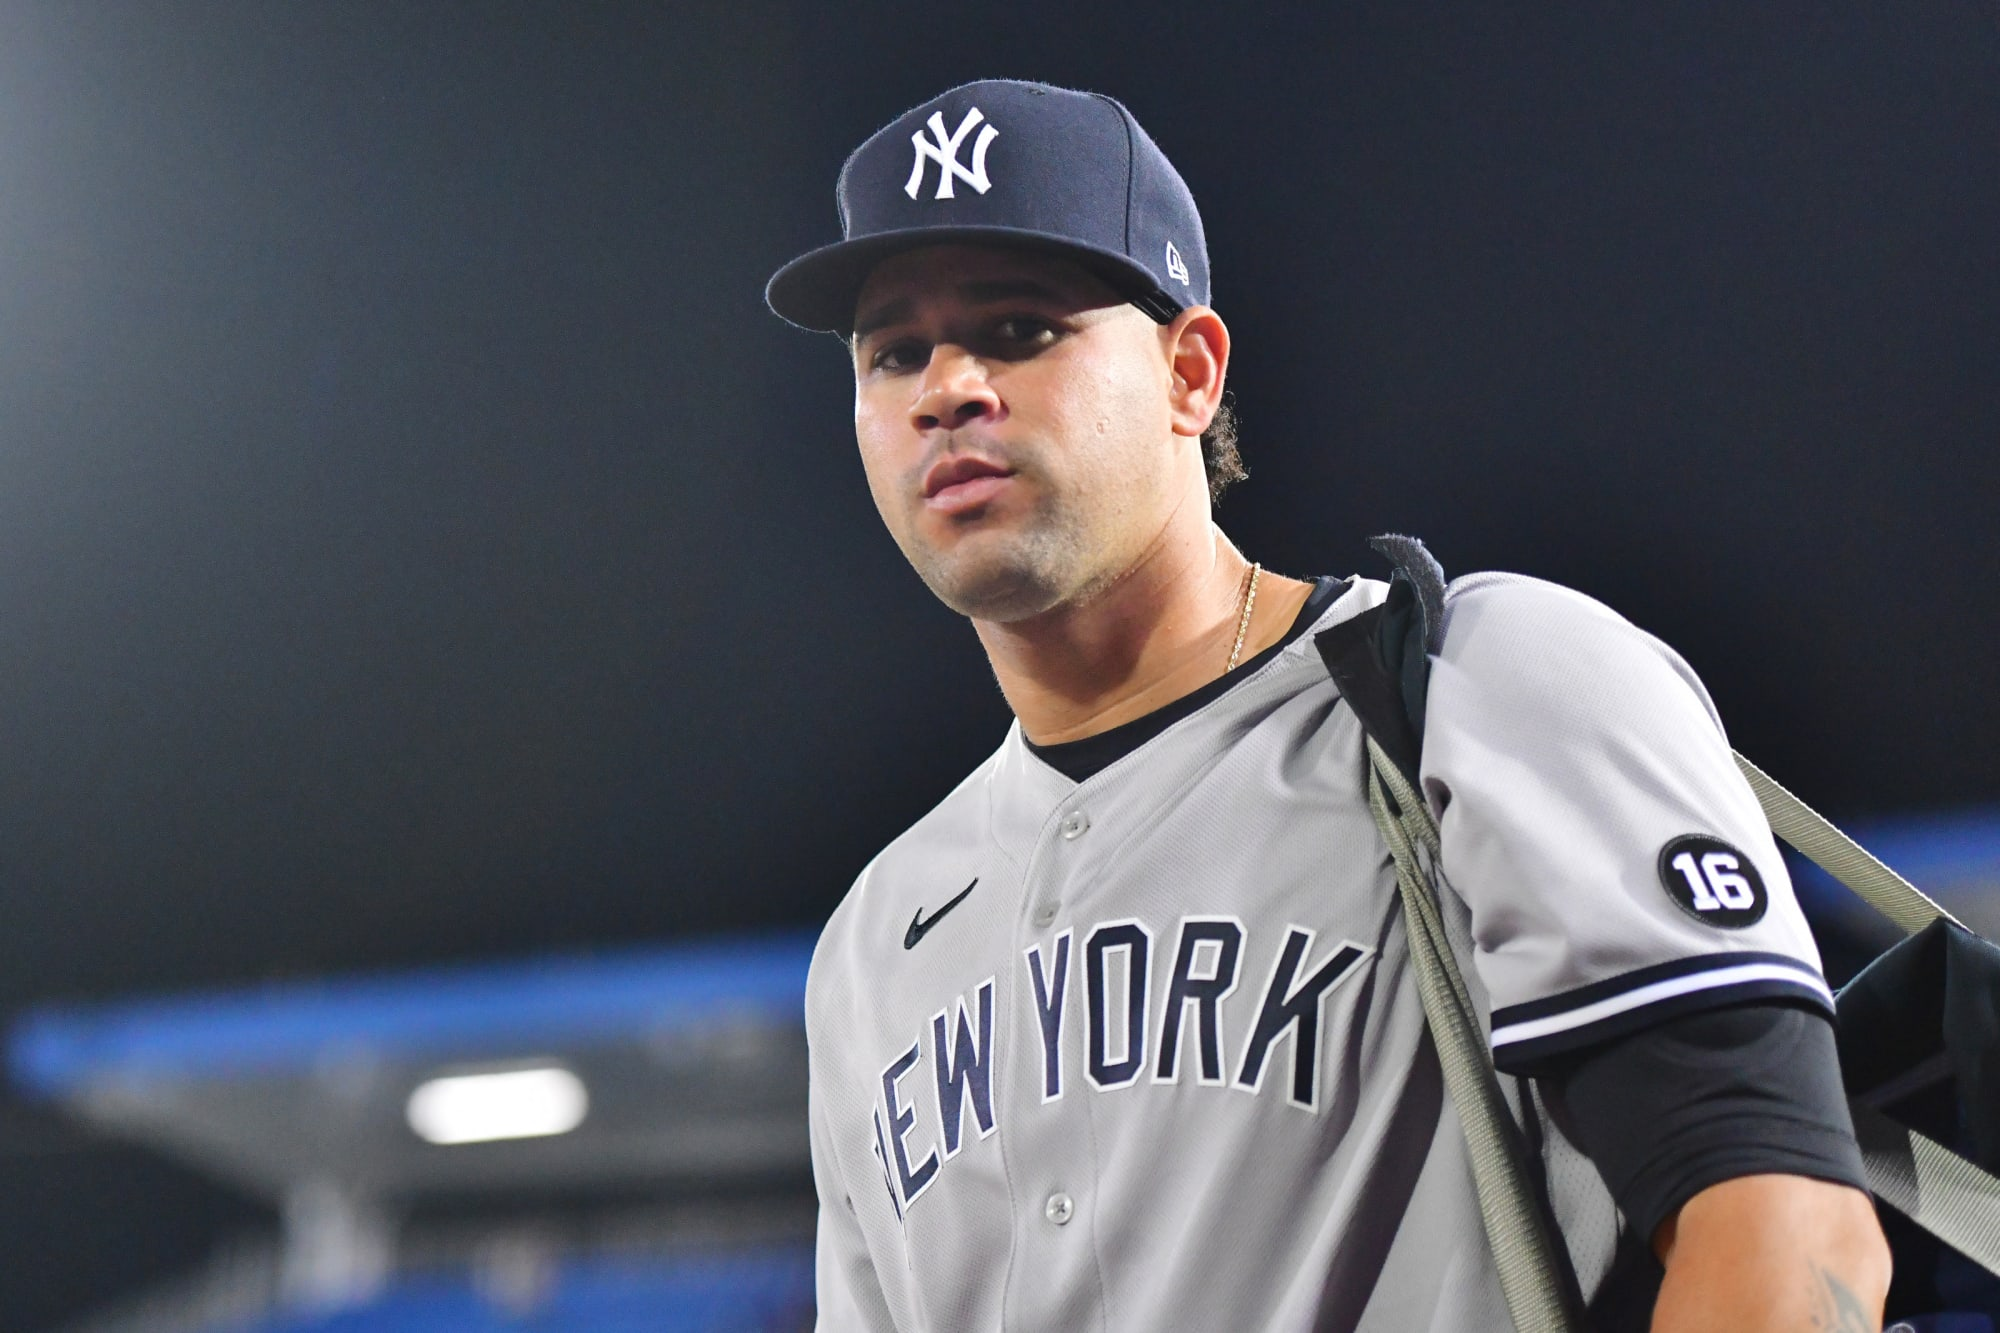 Yankees: Can Gary Sanchez make comeback while platooning?